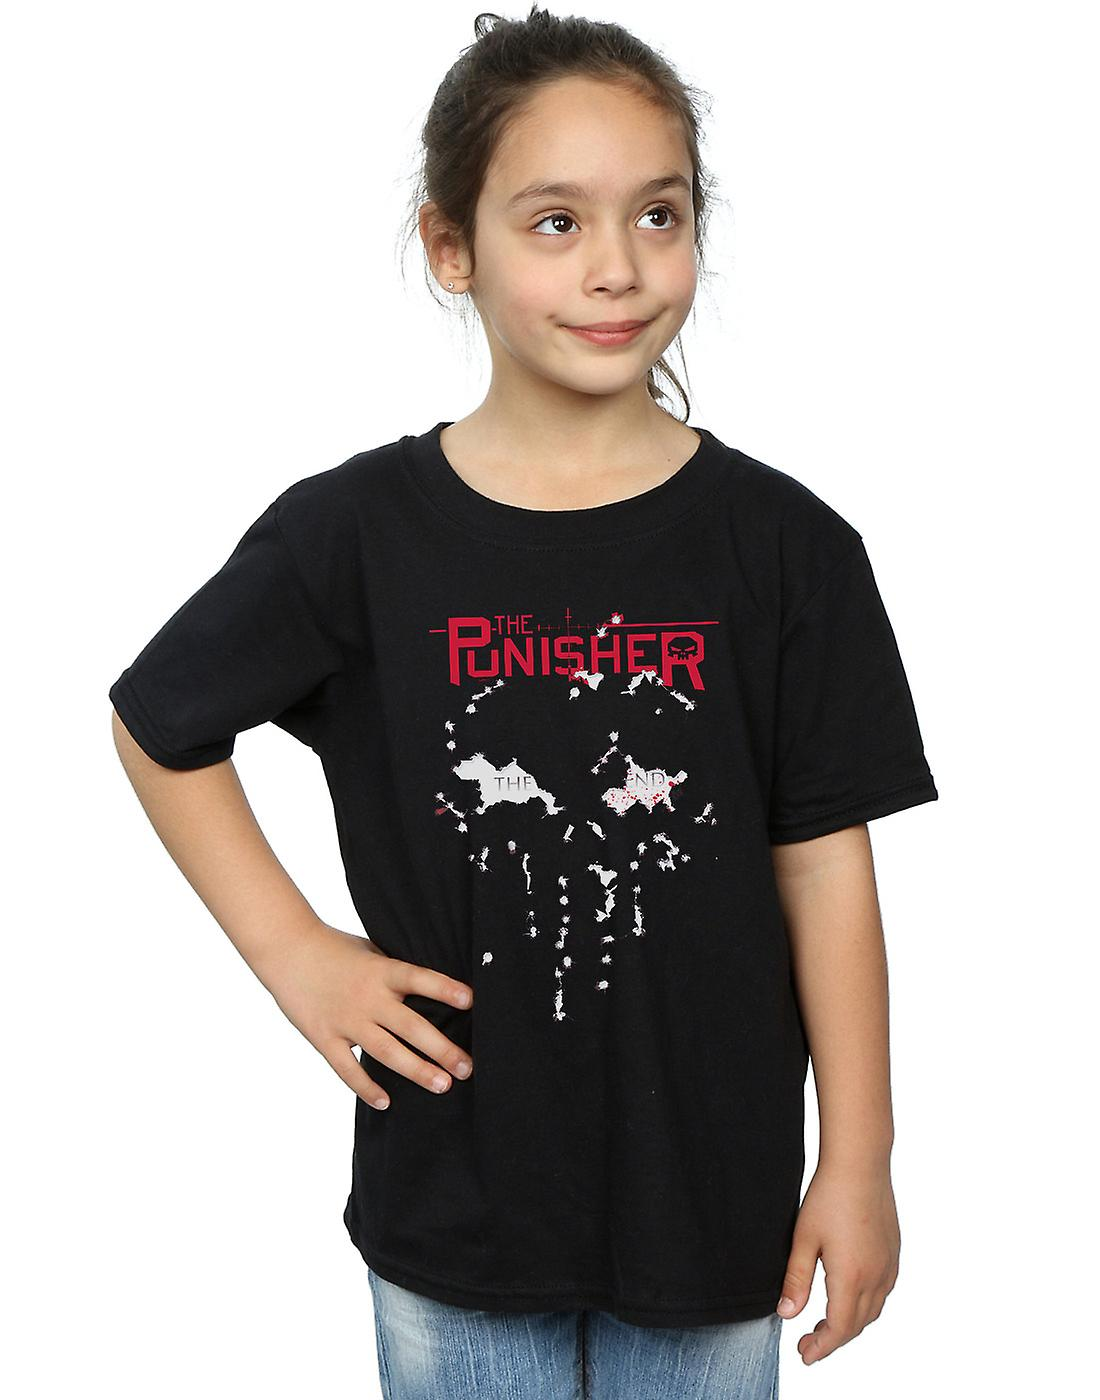 Marvel Girls The Punisher The End T-Shirt